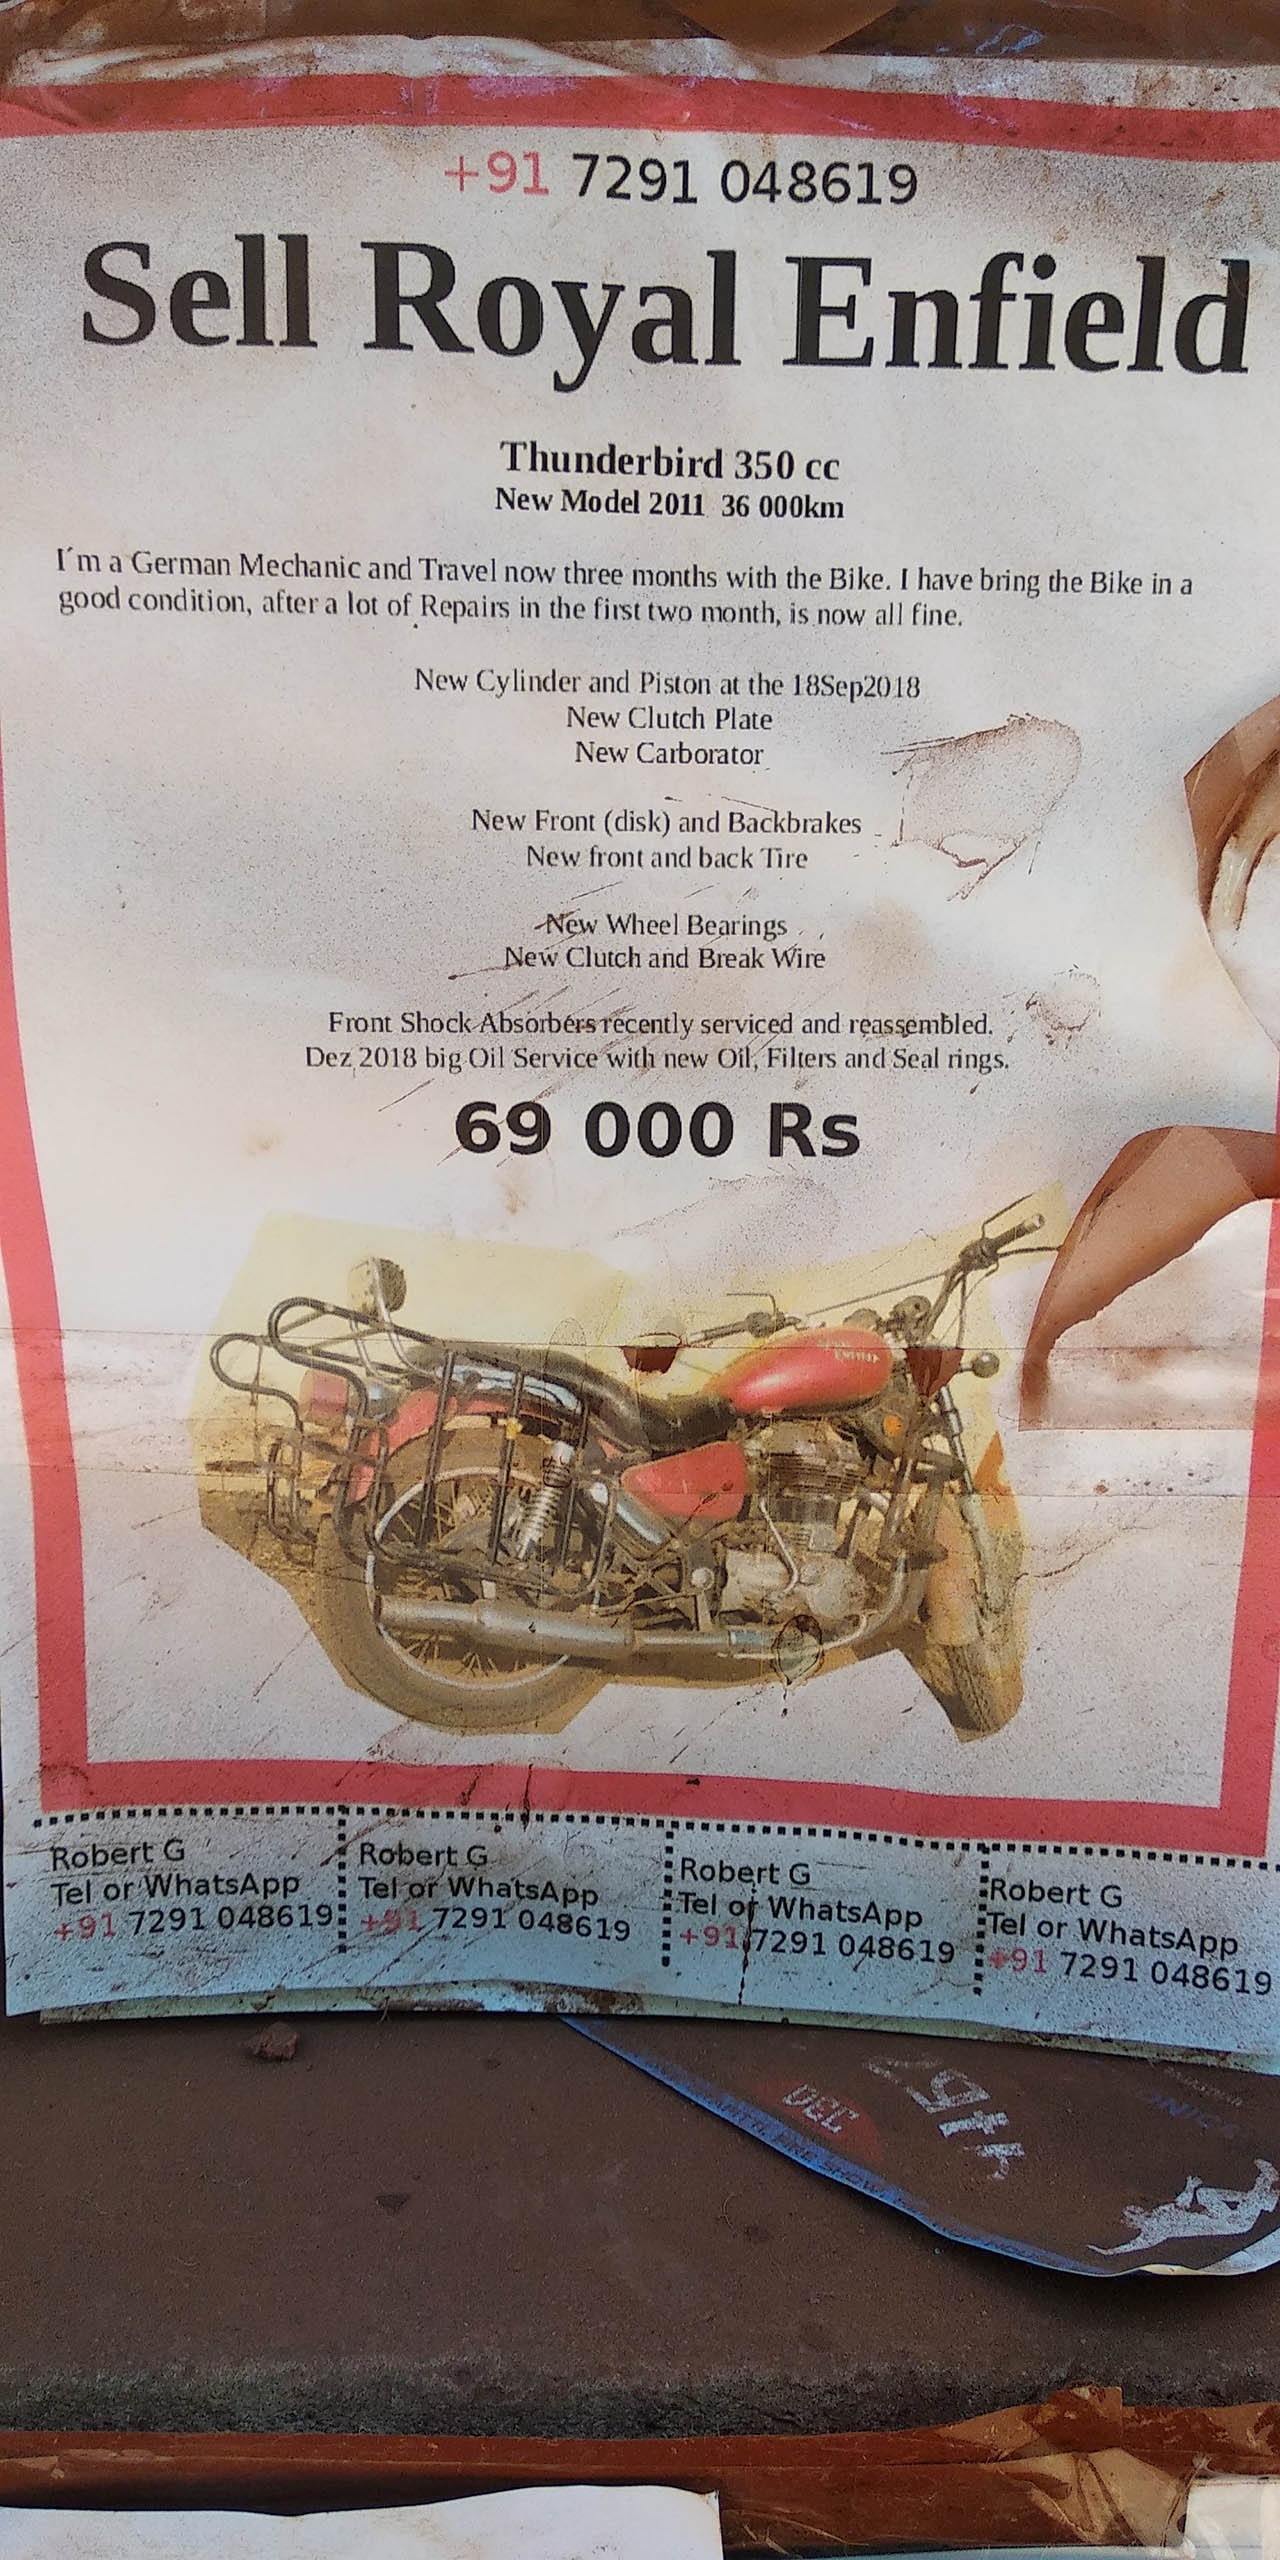 Sell Royal Enfield